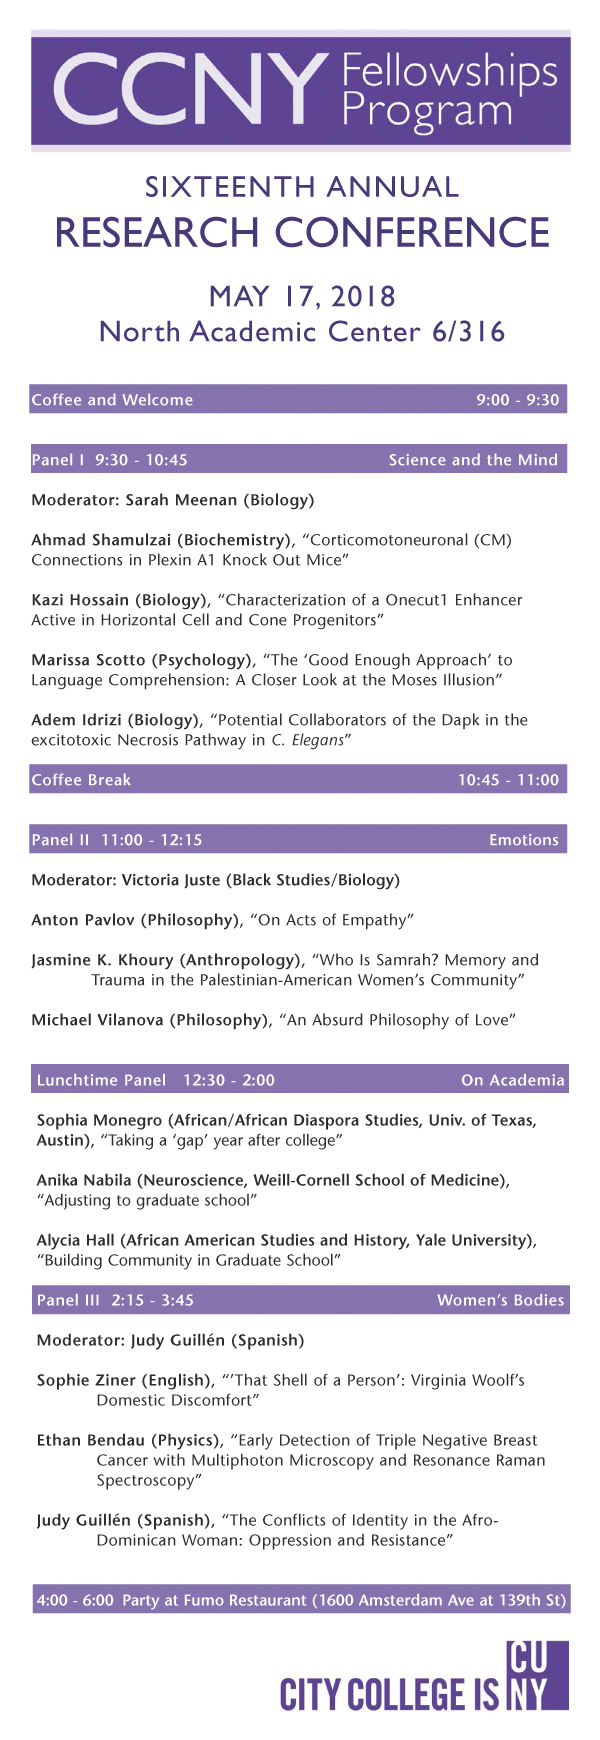 CCNY Research Conference 2018